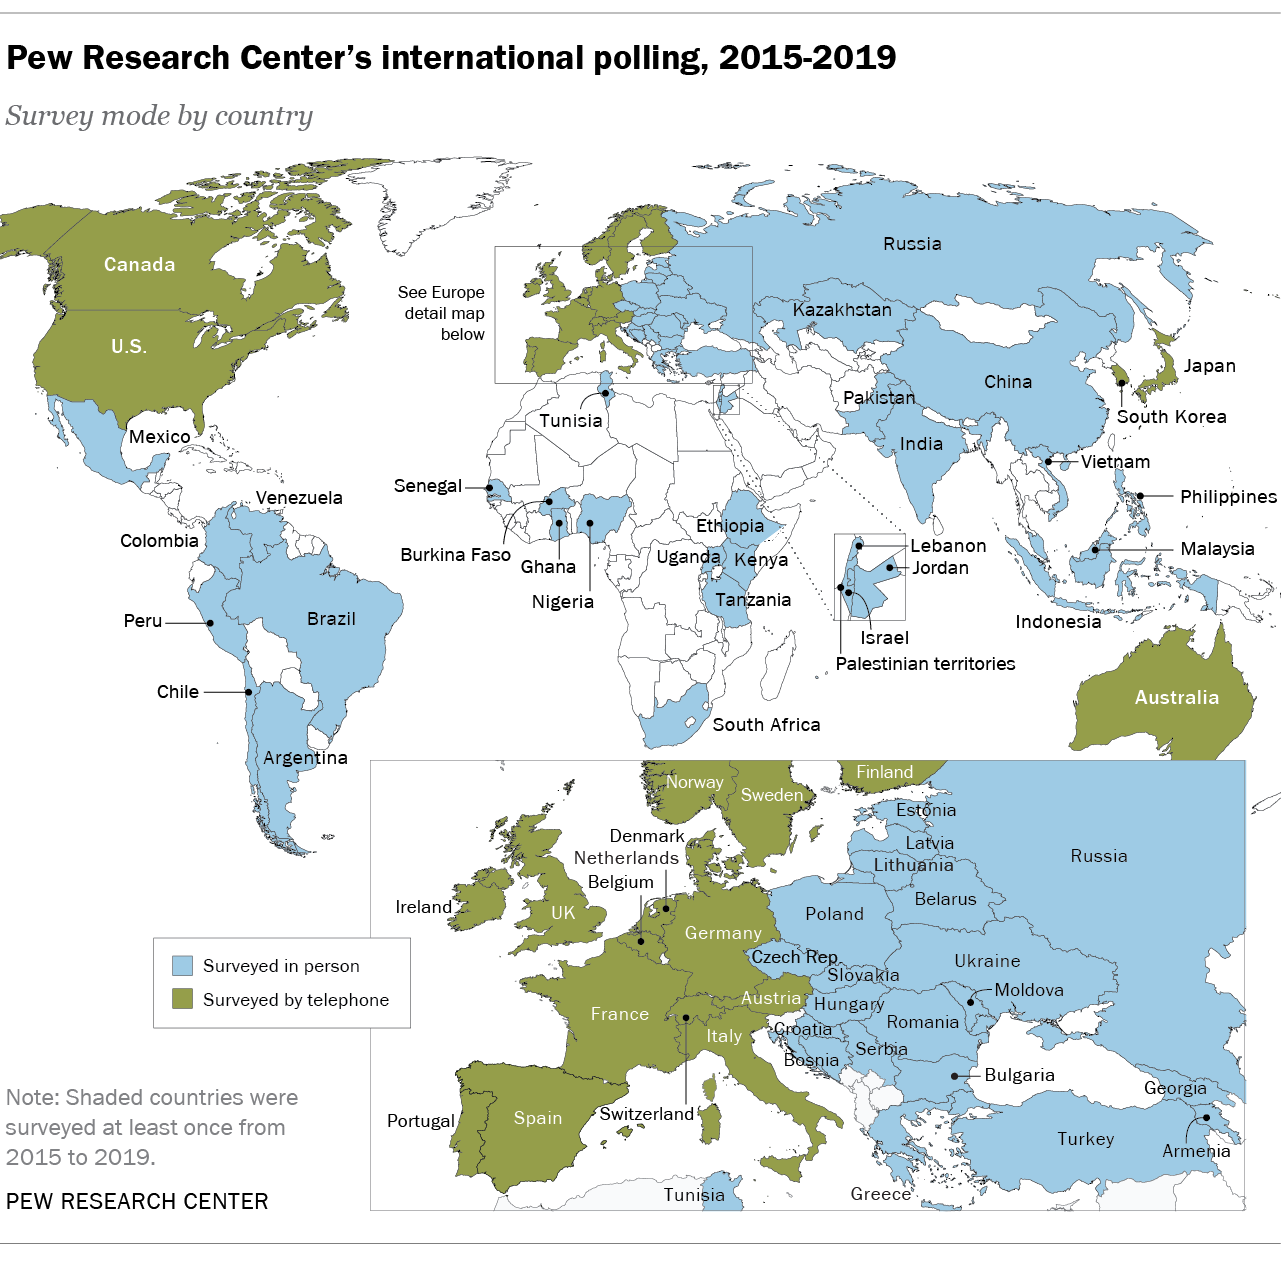 Pew Research Center's international polling, 2015-2019